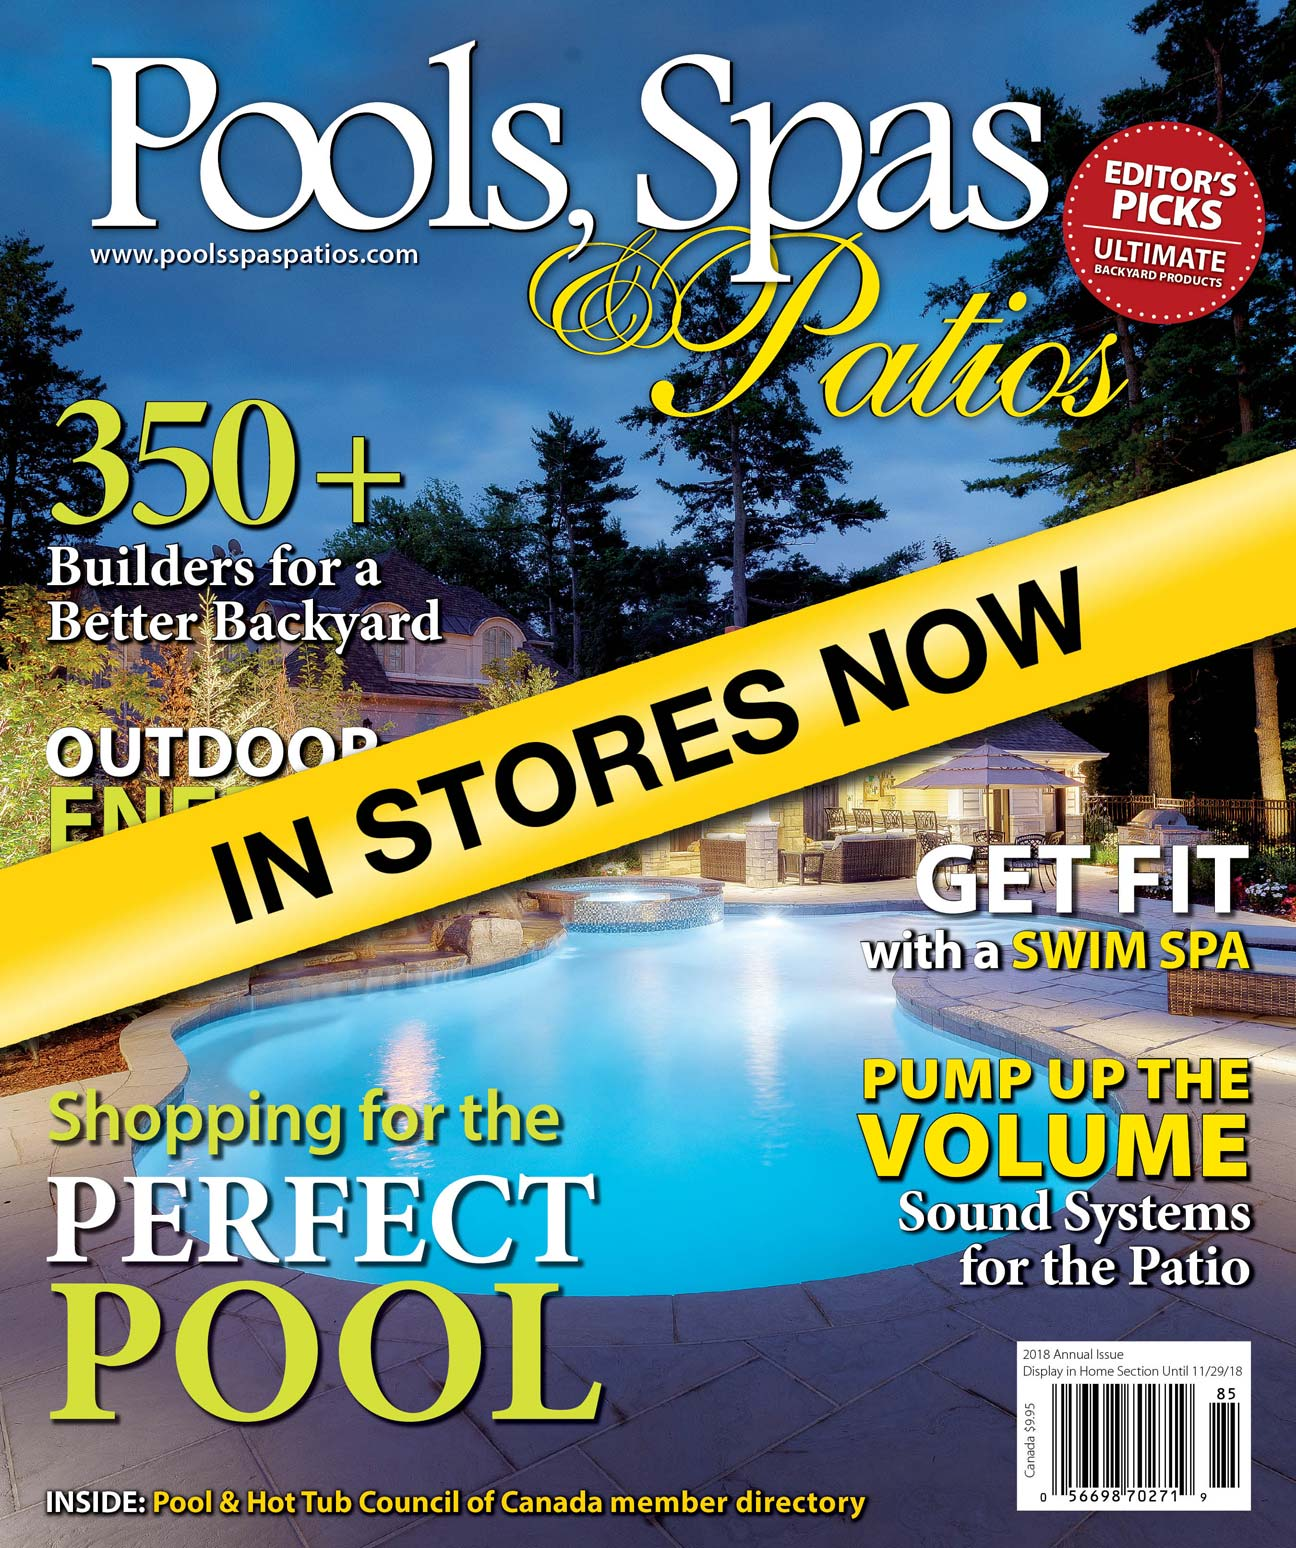 The 2018 annual issue of Pools, Spas & Patios is now available on Canadian newsstands.